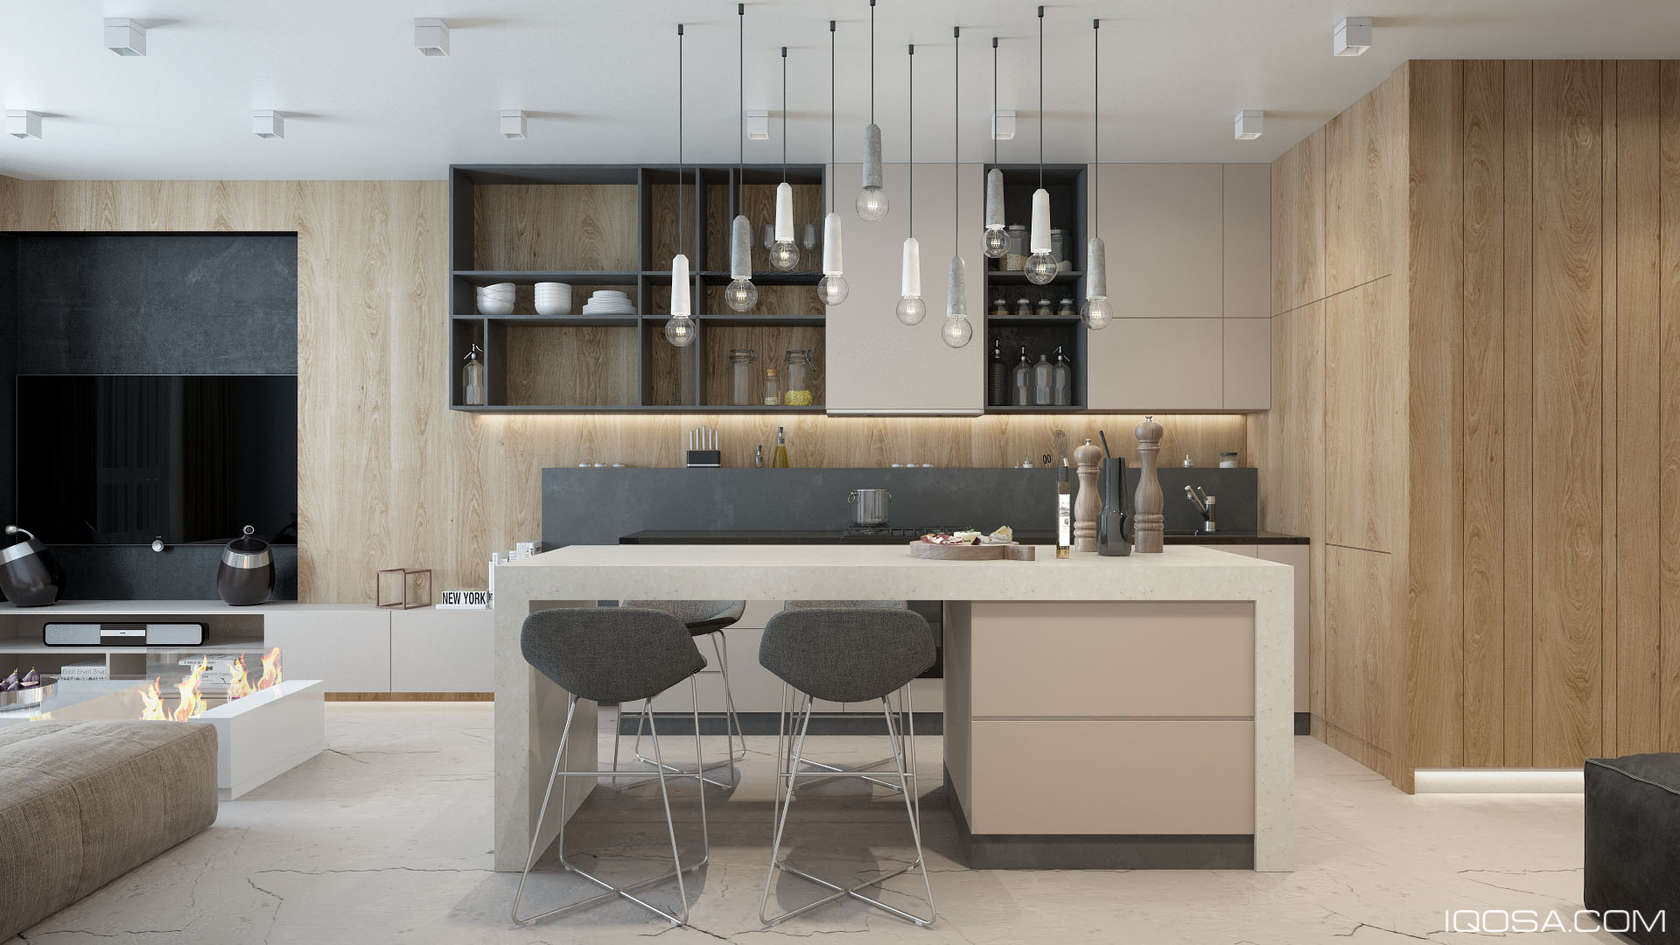 Luxury small studio apartment design combined modern and for Modern luxury kitchen designs